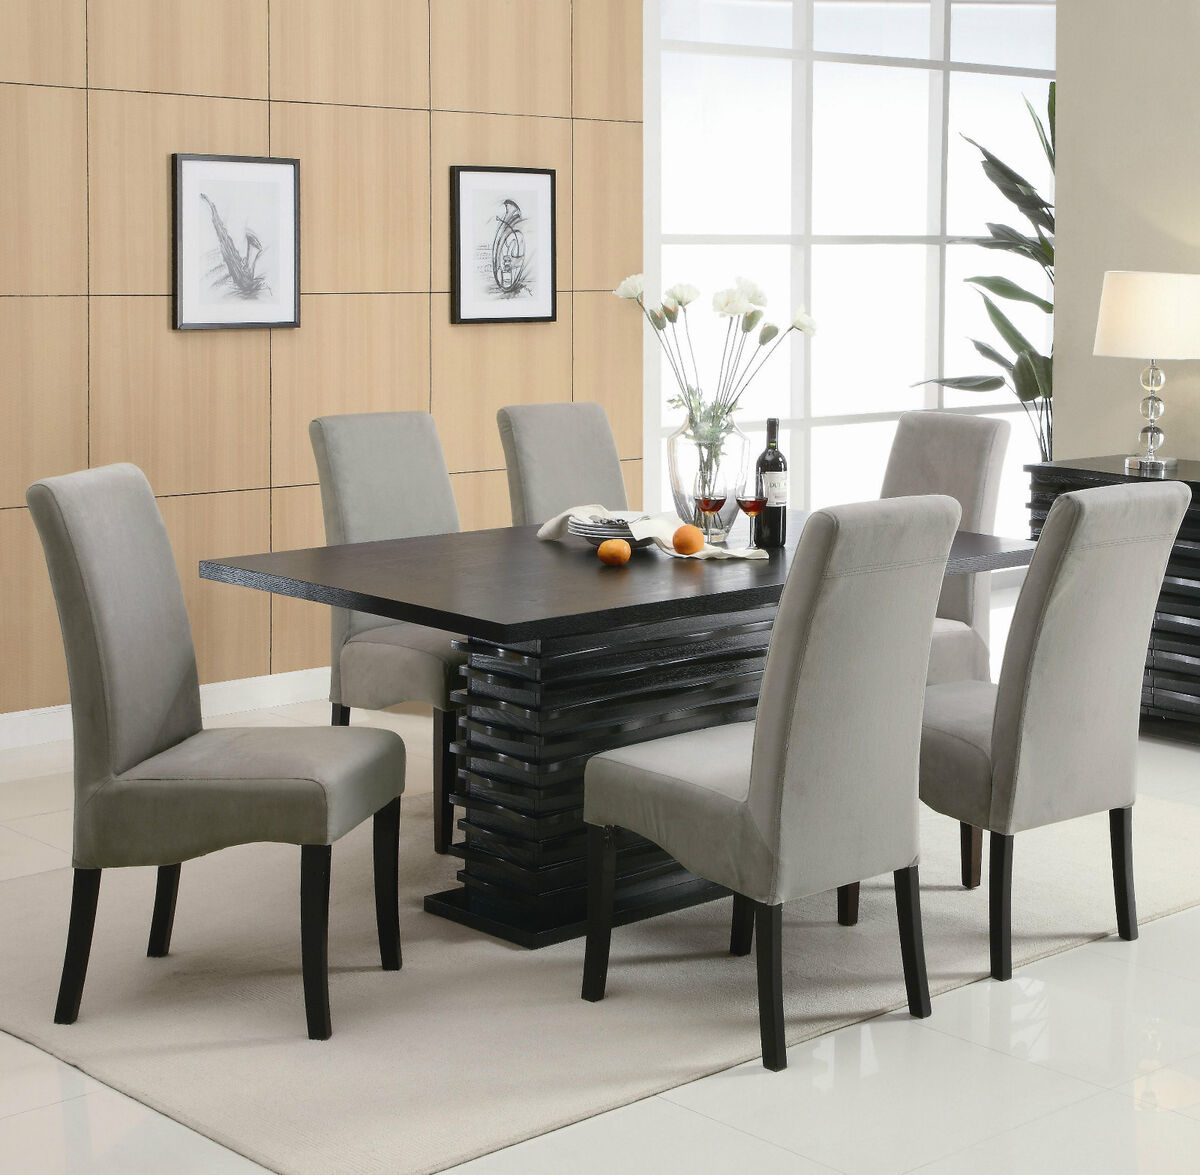 Dining table furniture contemporary dining table chairs for Modern dining room table